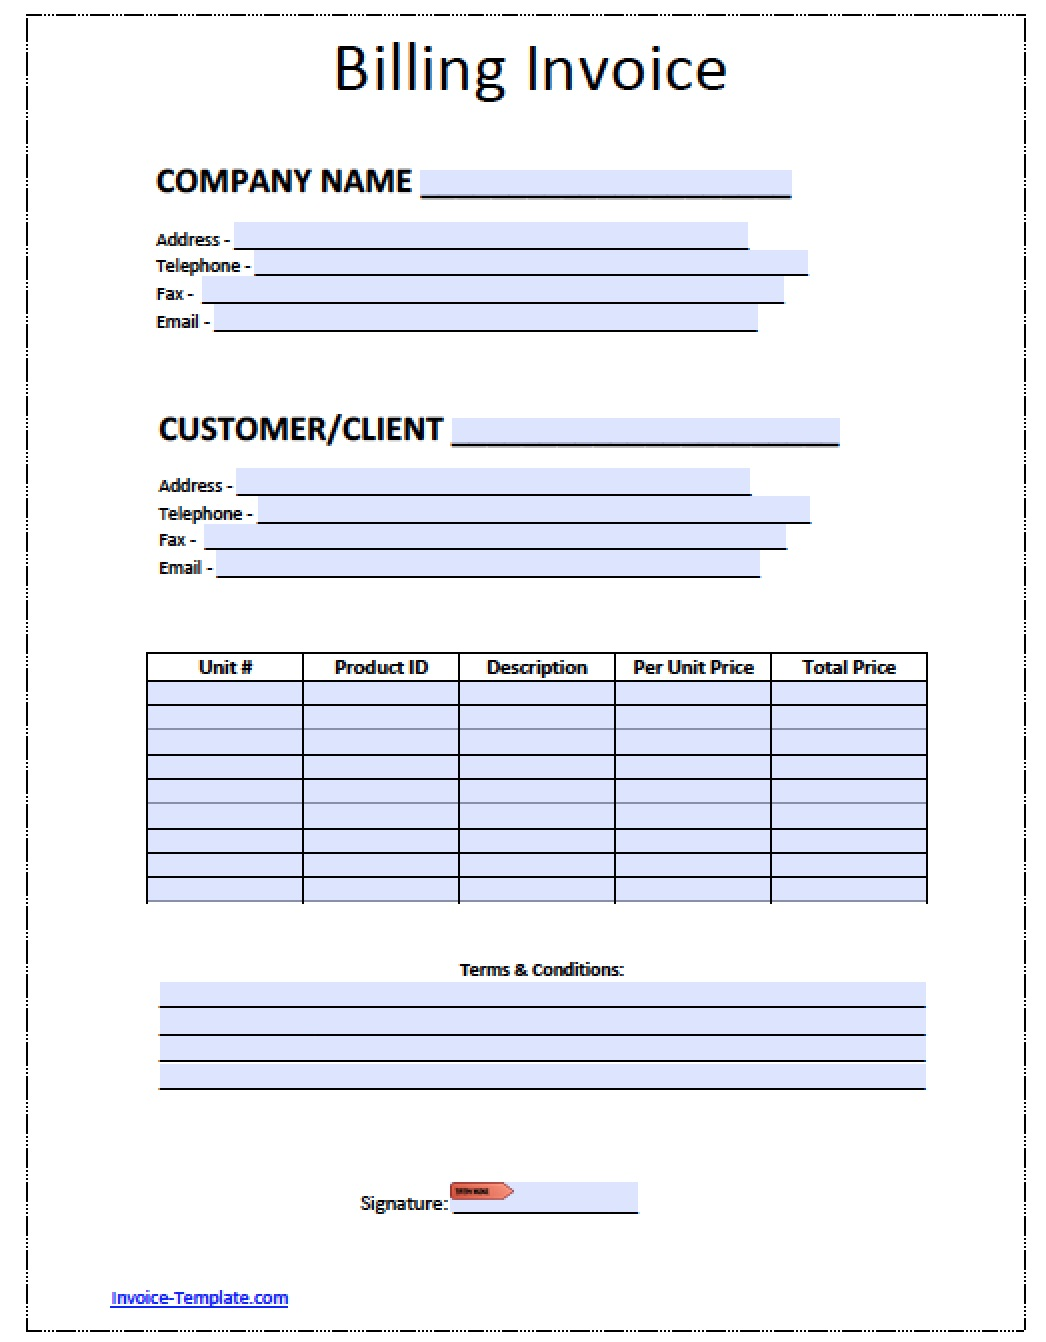 Darkfaderus  Wonderful Billing Invoice Invoices Faq U Cloudflare Support Billing  With Outstanding Free Billing Invoice Template  Excel  Pdf  Word Doc  Billing With Amusing Latex Invoice Template Also Proforma Invoice Template Pdf In Addition Invoices On Line And Cxml Invoice As Well As Lps Invoice Management Login Additionally Edmunds Dealer Invoice Price From Happytomco With Darkfaderus  Outstanding Billing Invoice Invoices Faq U Cloudflare Support Billing  With Amusing Free Billing Invoice Template  Excel  Pdf  Word Doc  Billing And Wonderful Latex Invoice Template Also Proforma Invoice Template Pdf In Addition Invoices On Line From Happytomco